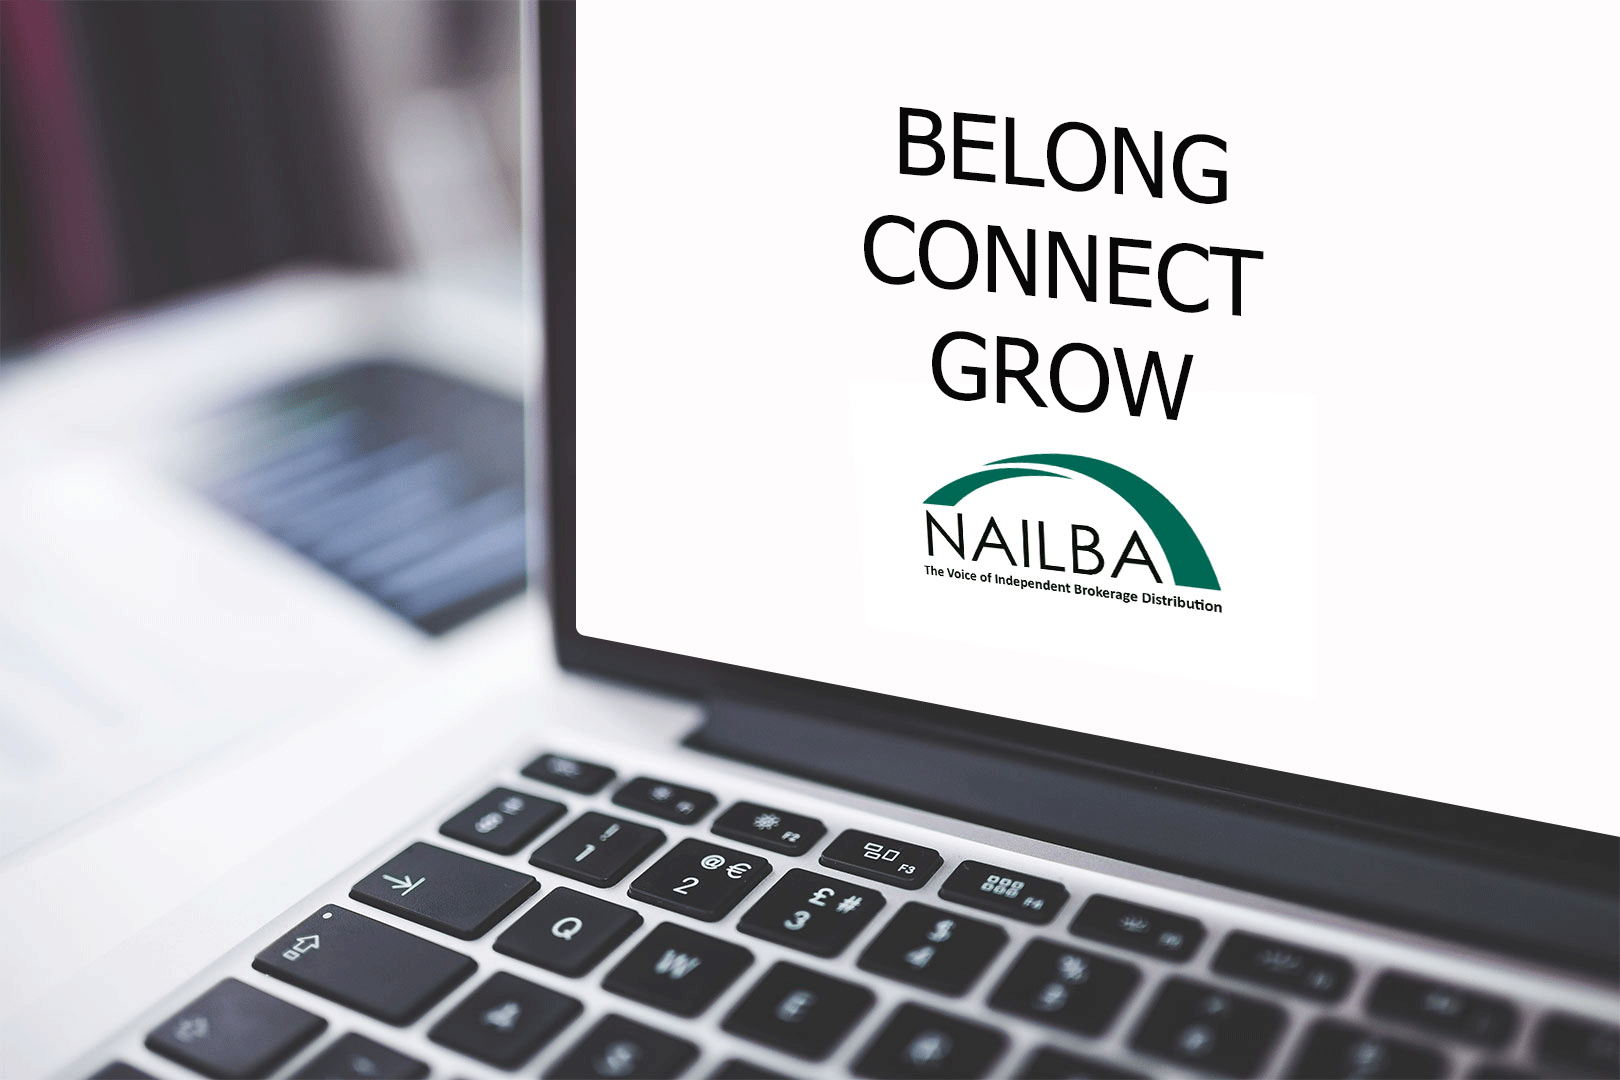 Belong Connect Grow